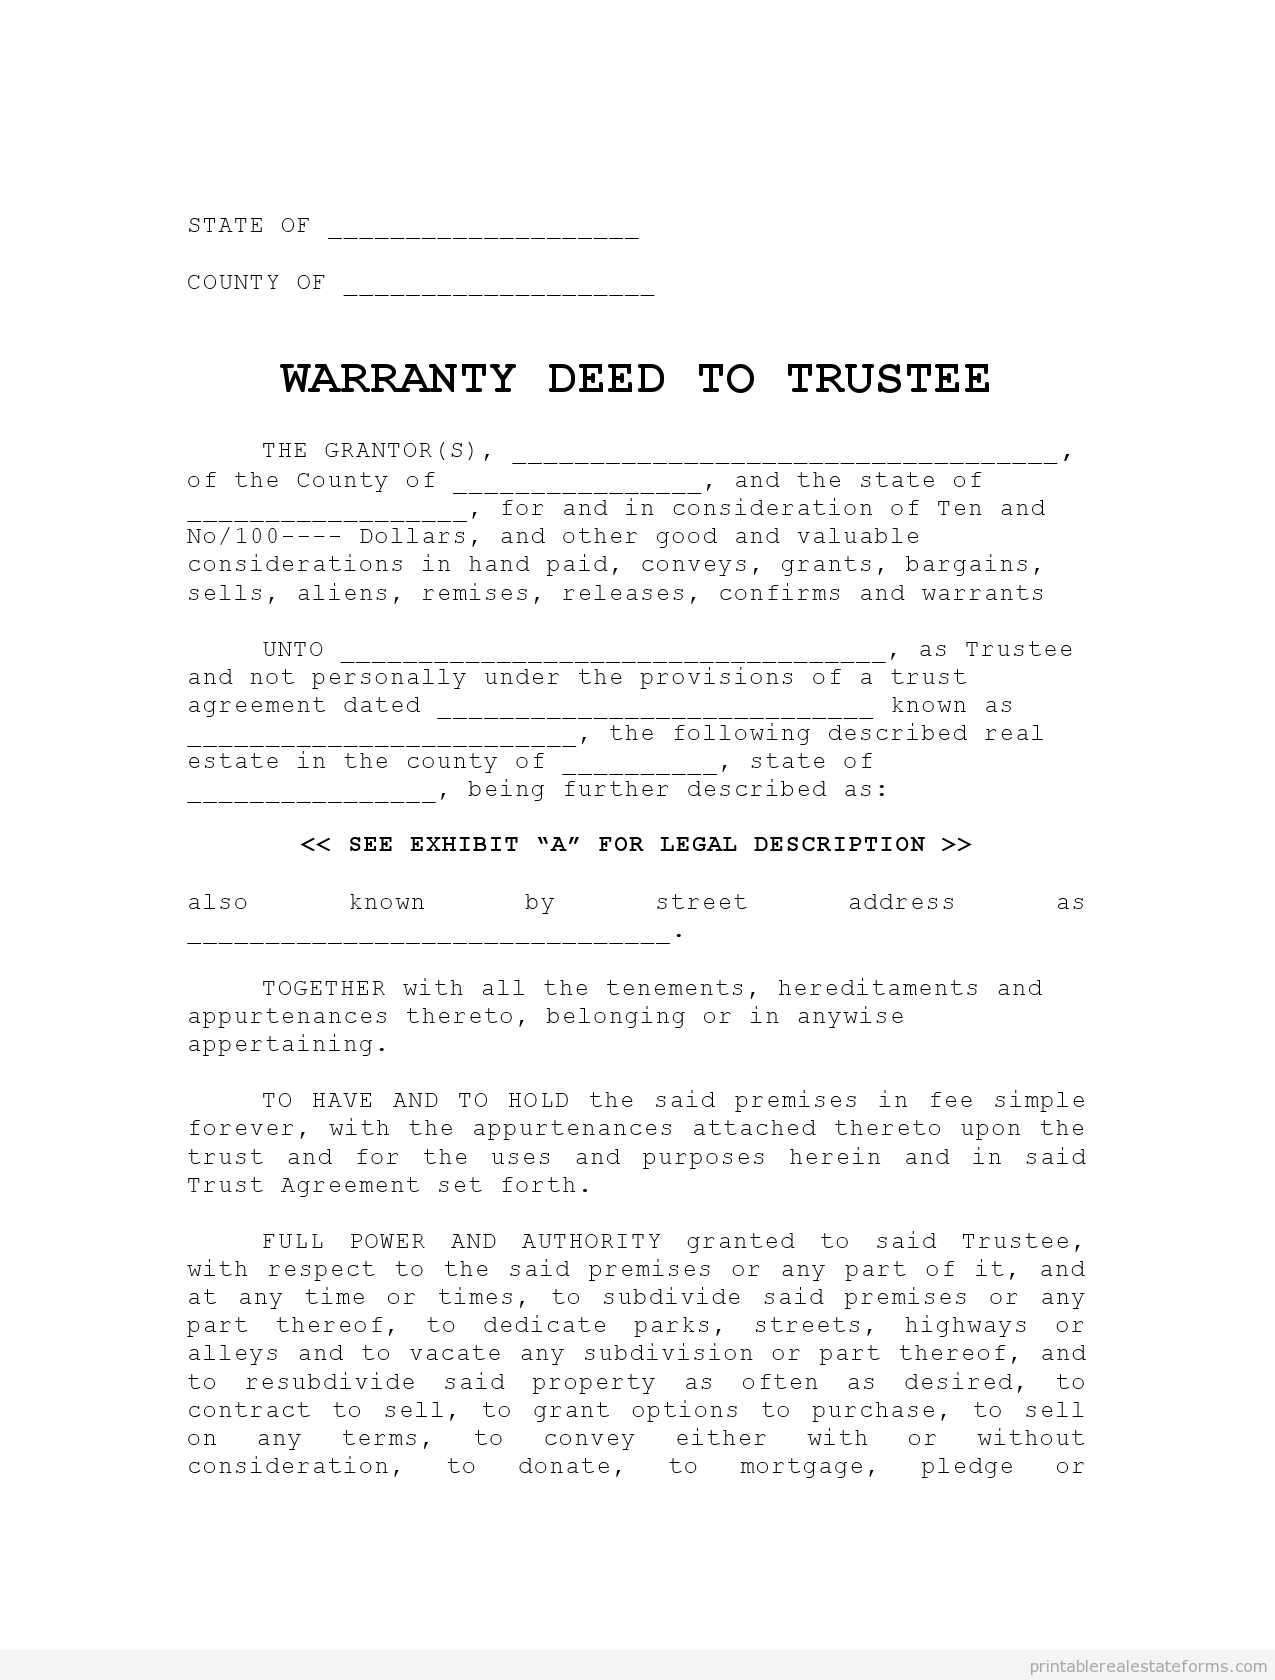 Sample Printable Warranty Deed To Trustee  Form  Sample Real